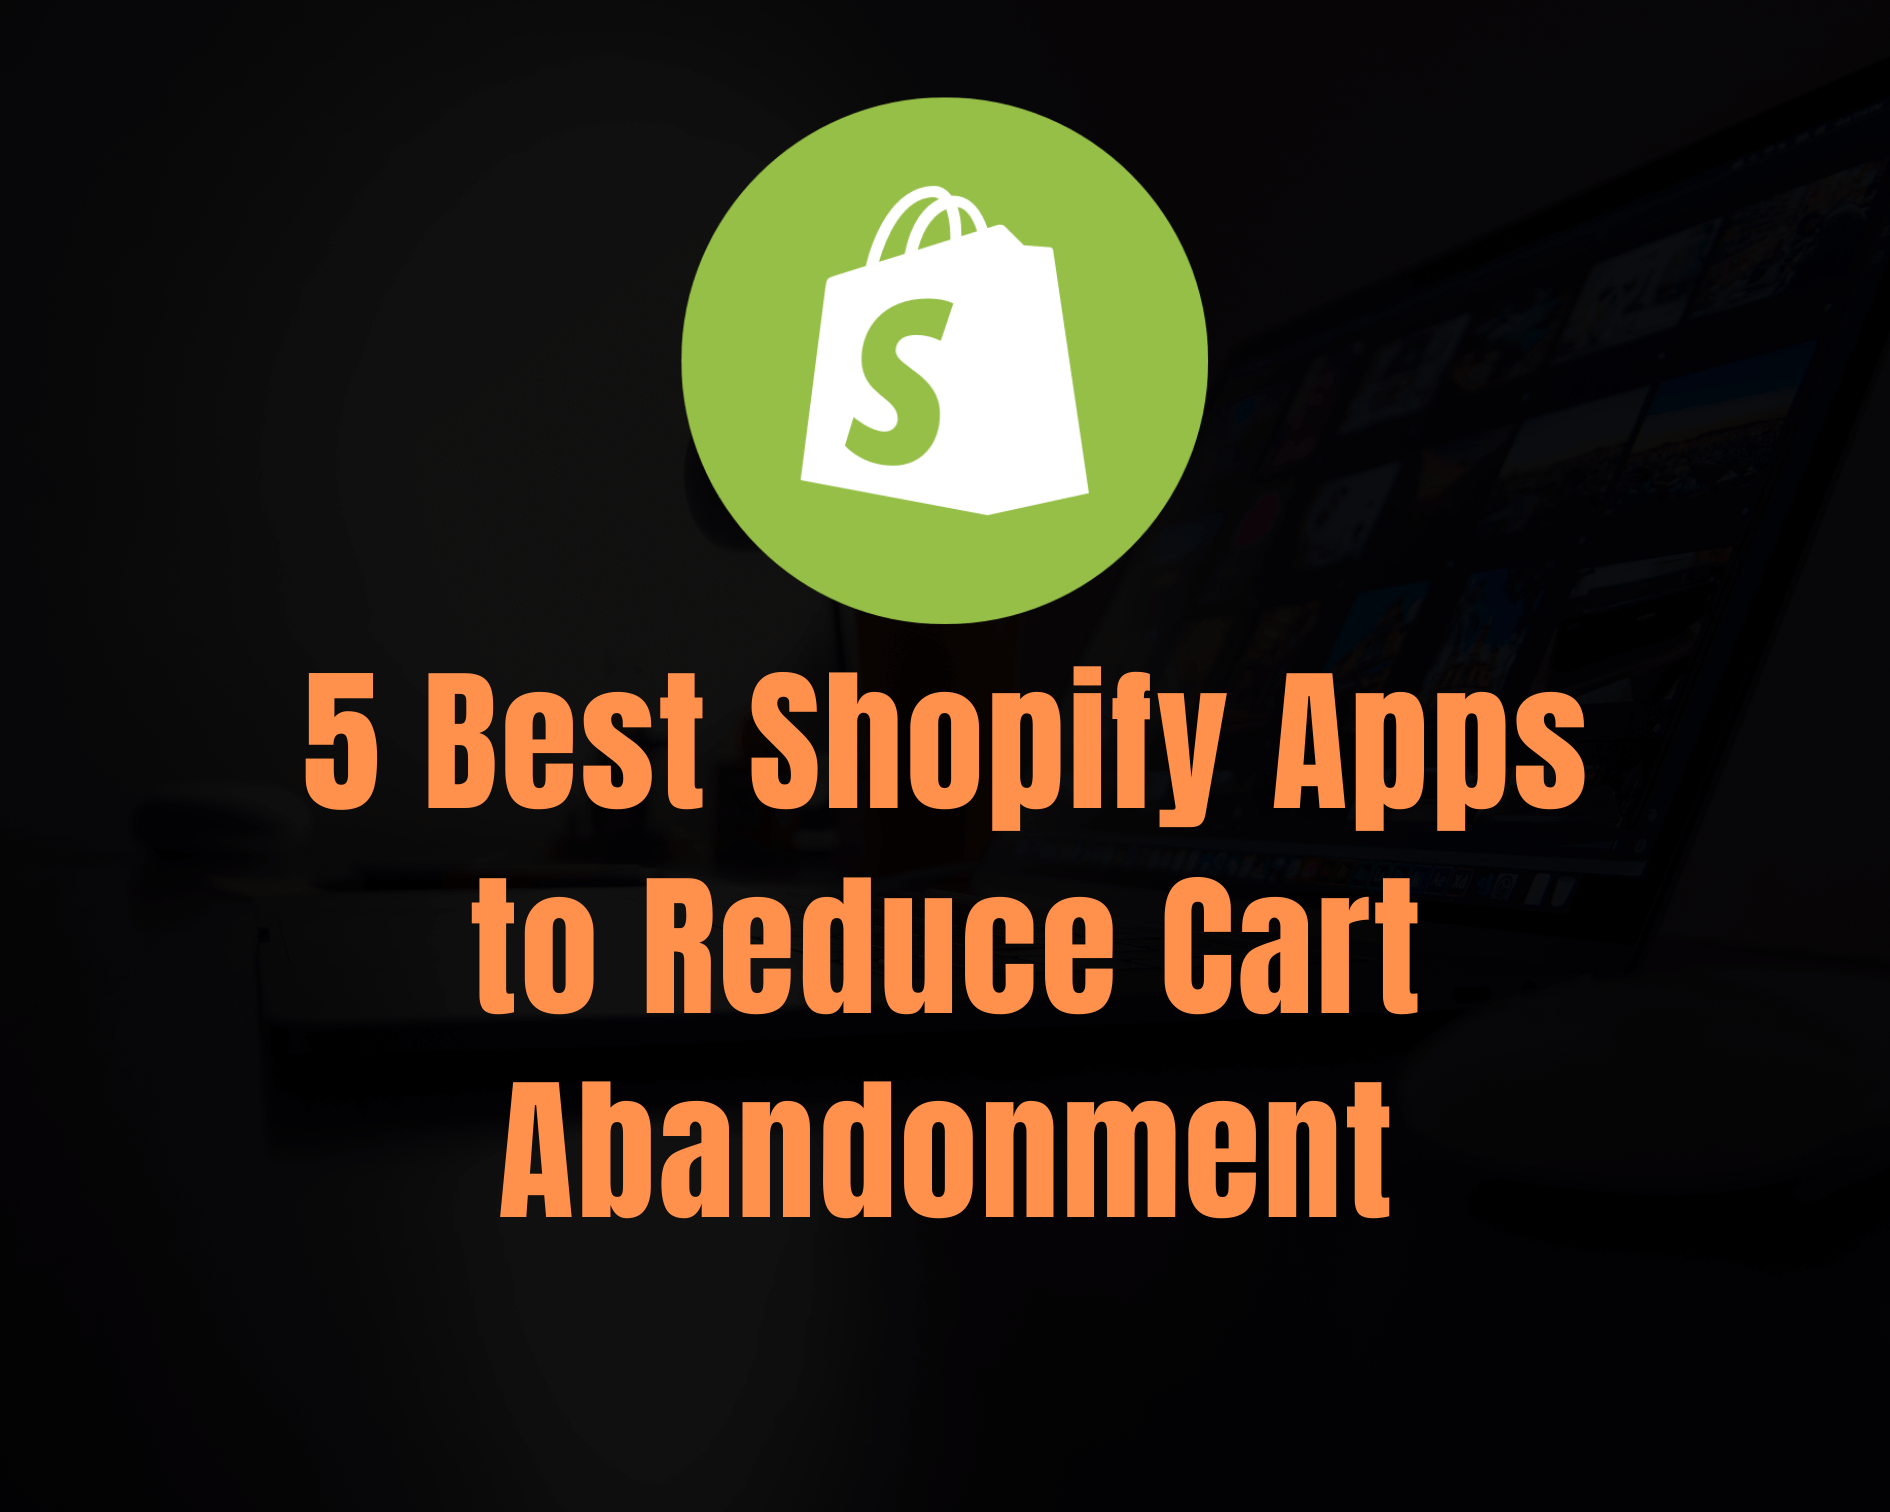 5 Best Shopify Apps to Reduce Cart Abandonment